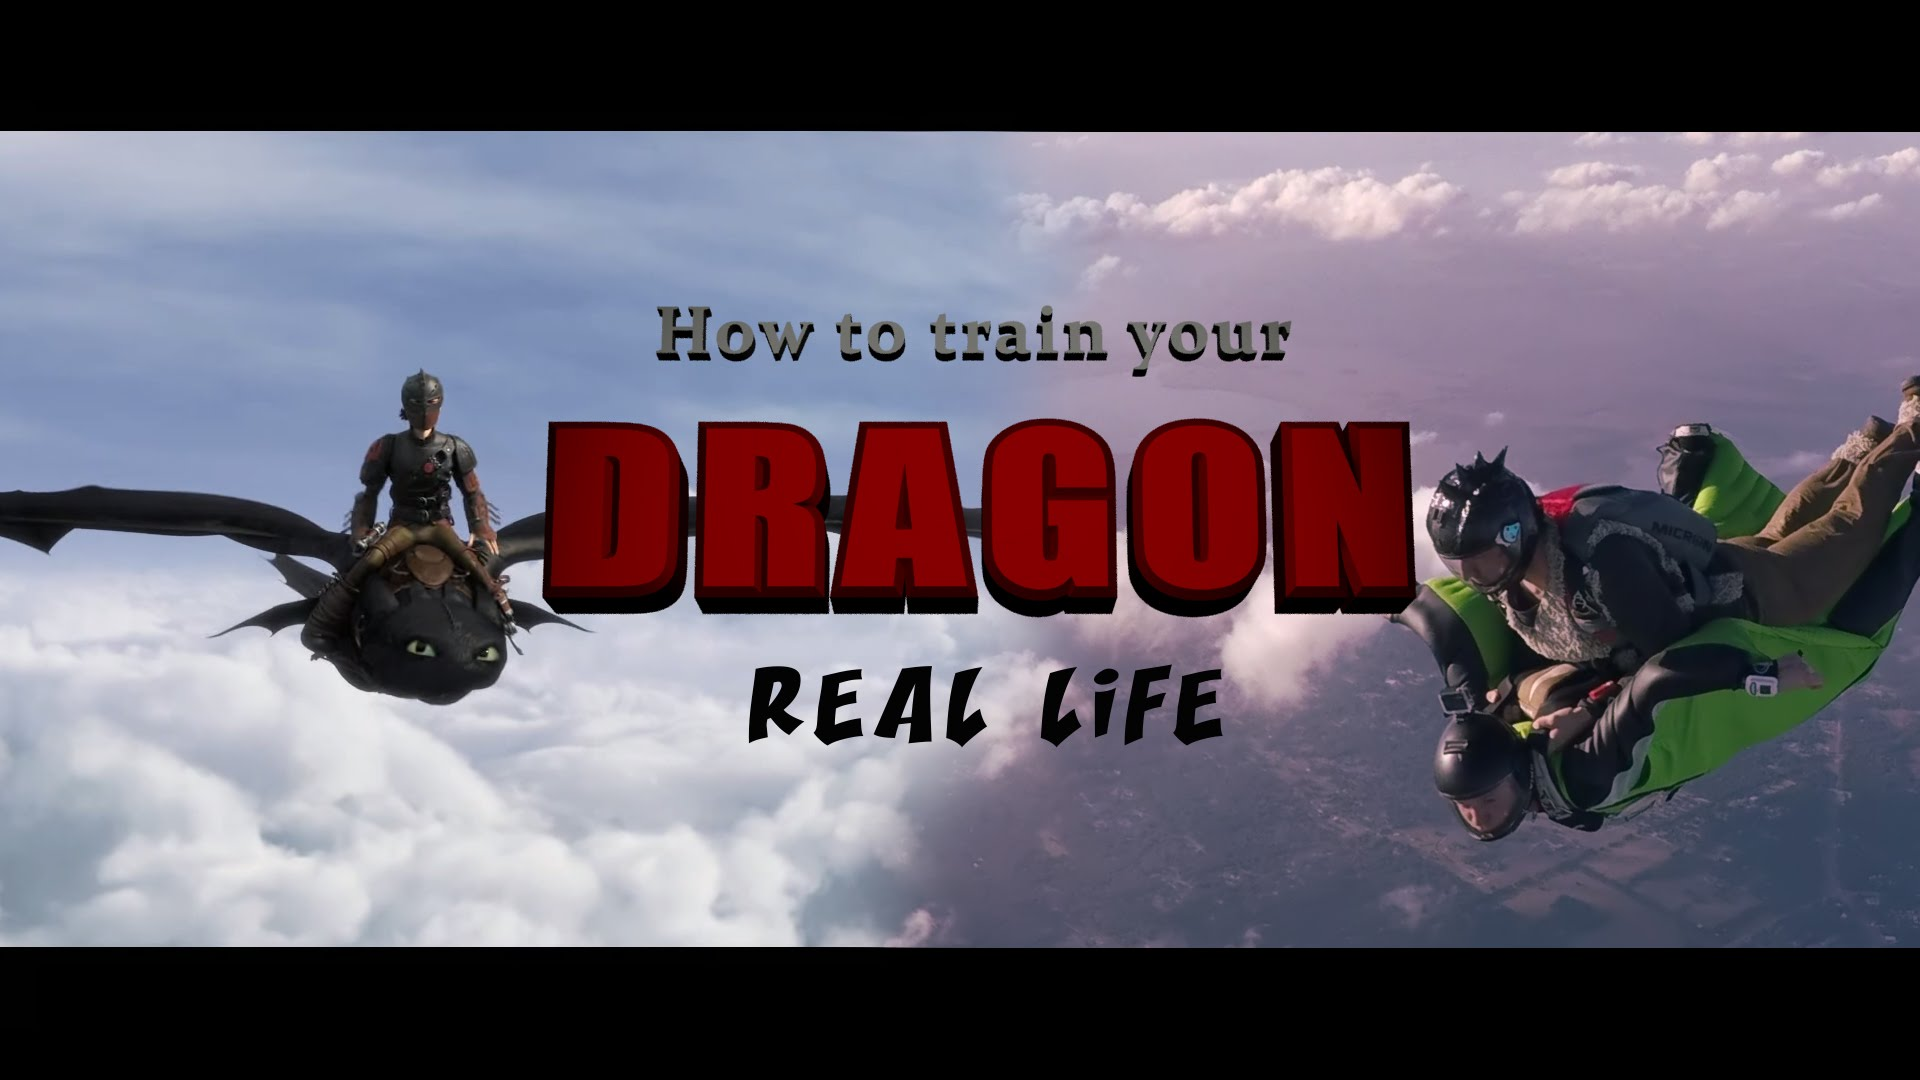 How to train your dragon - real life